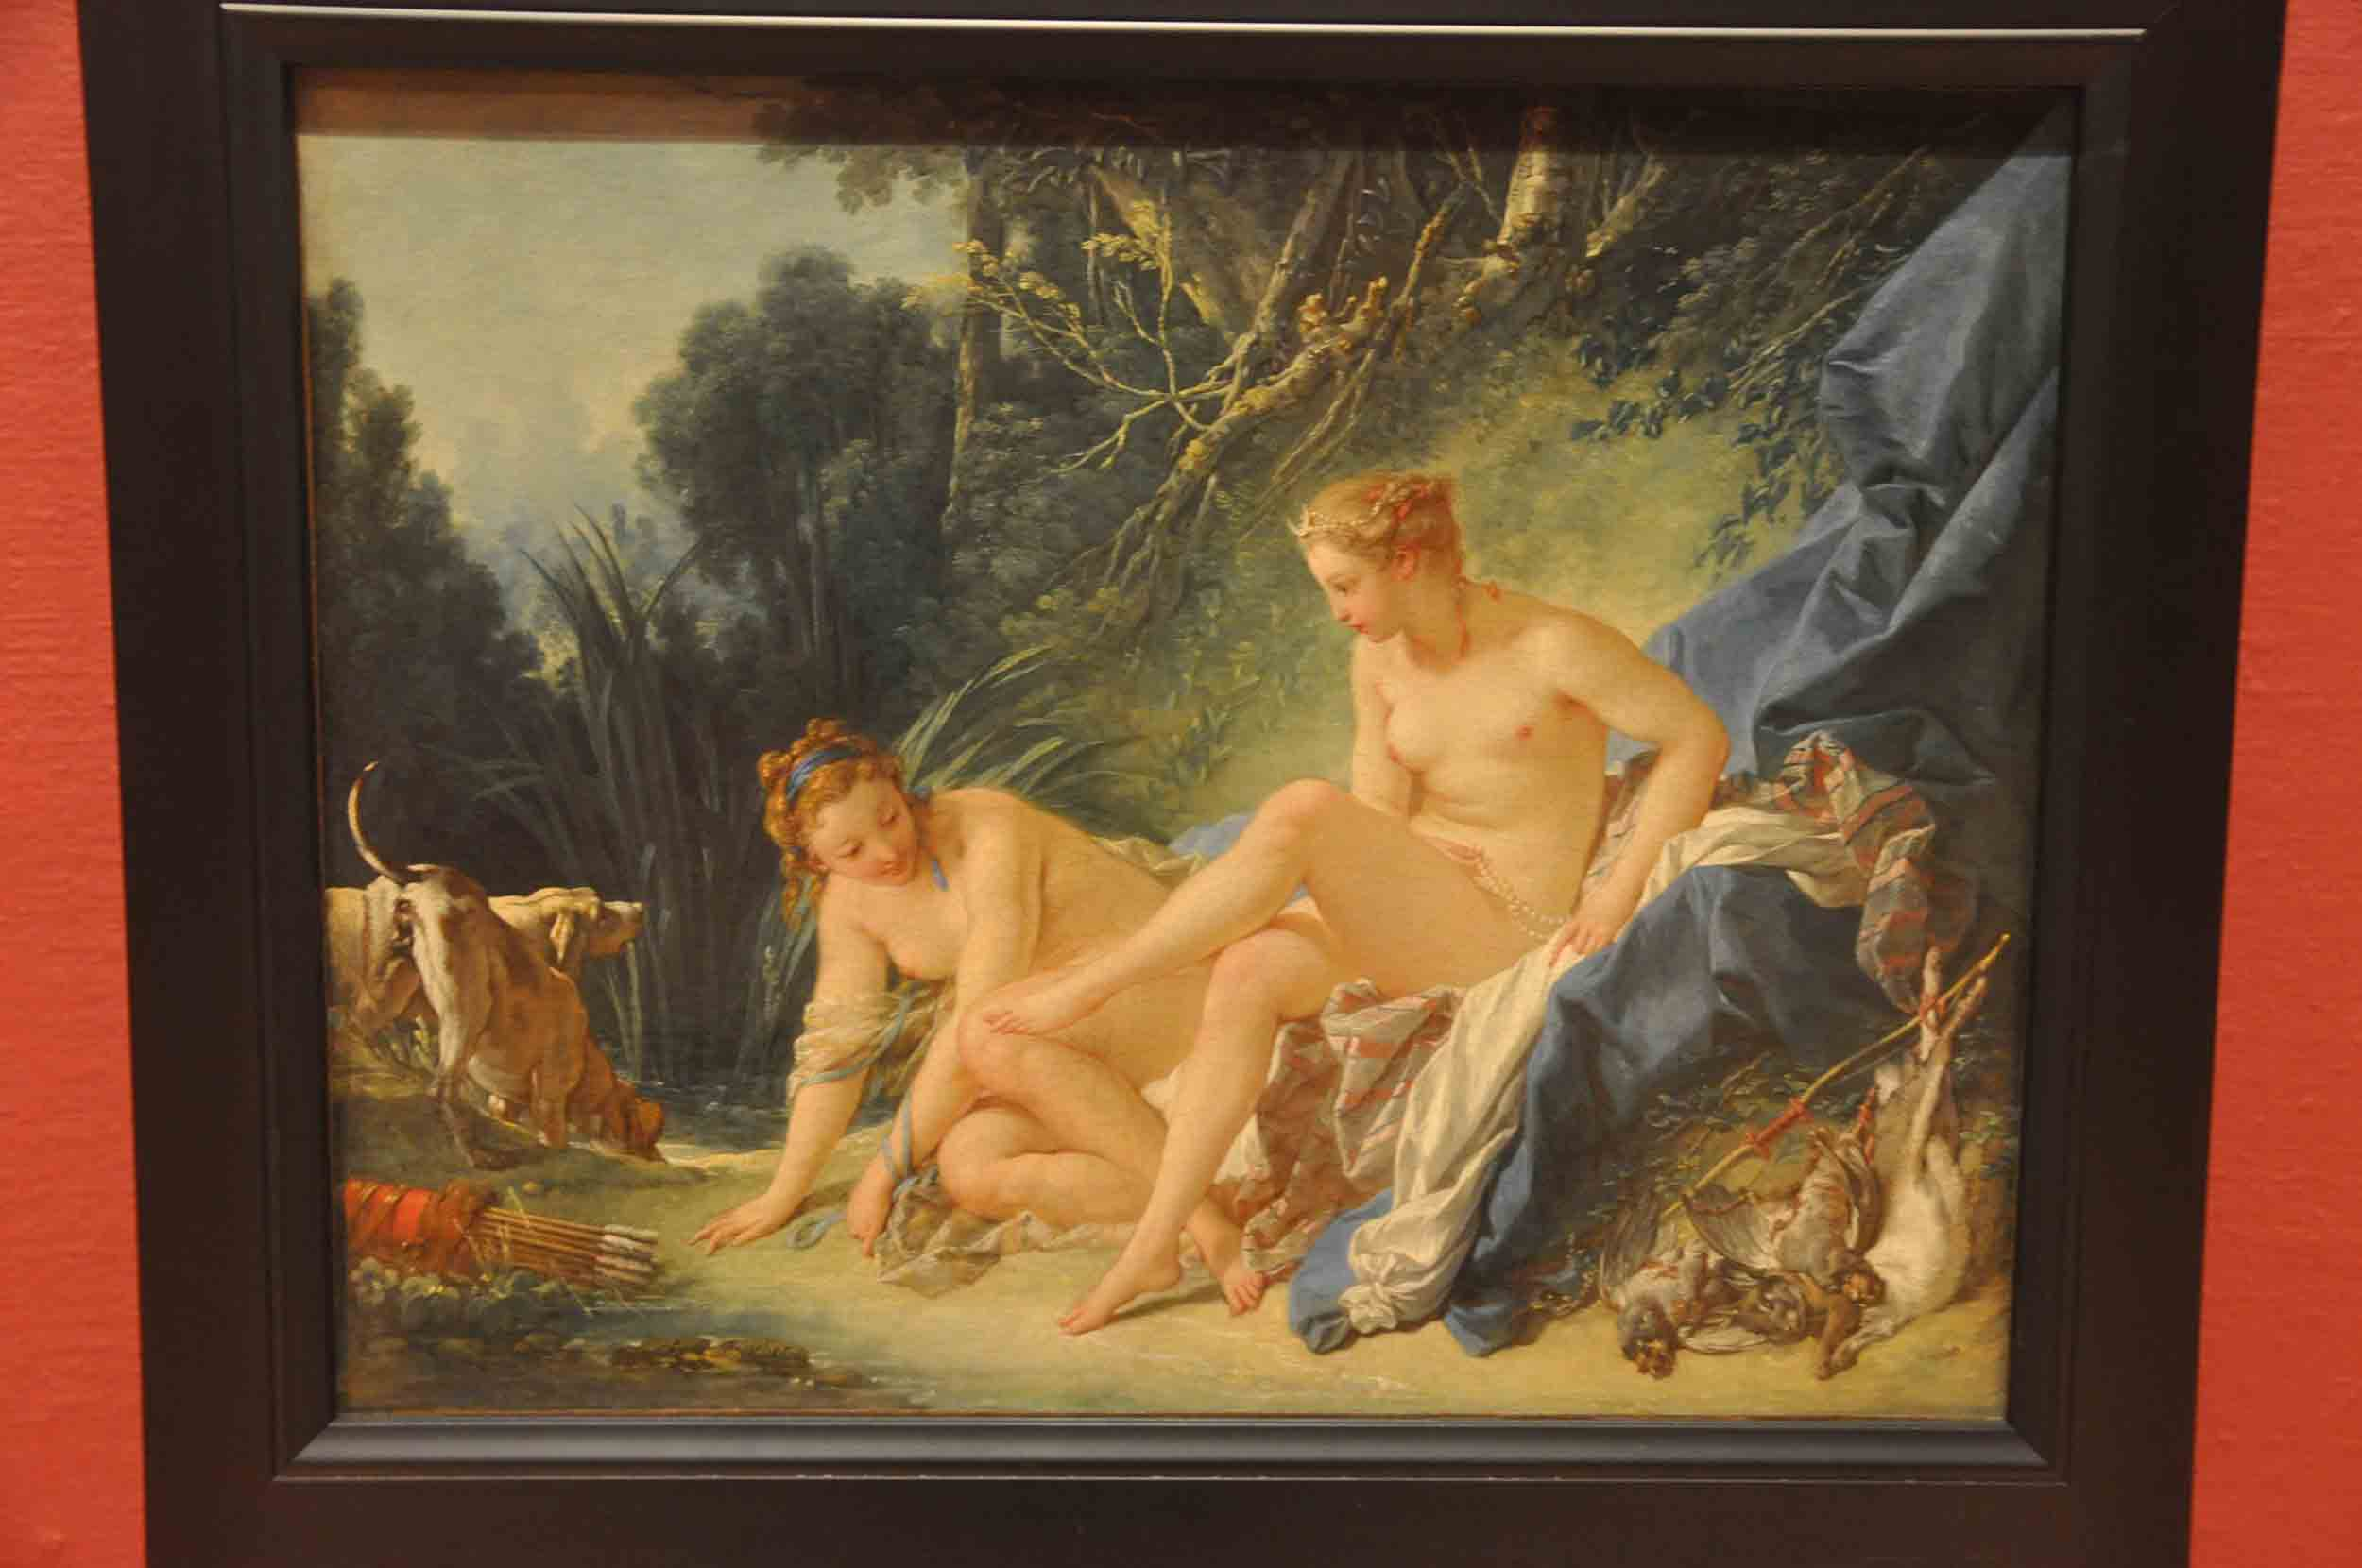 François Boucher - Diana Bathing, 1742